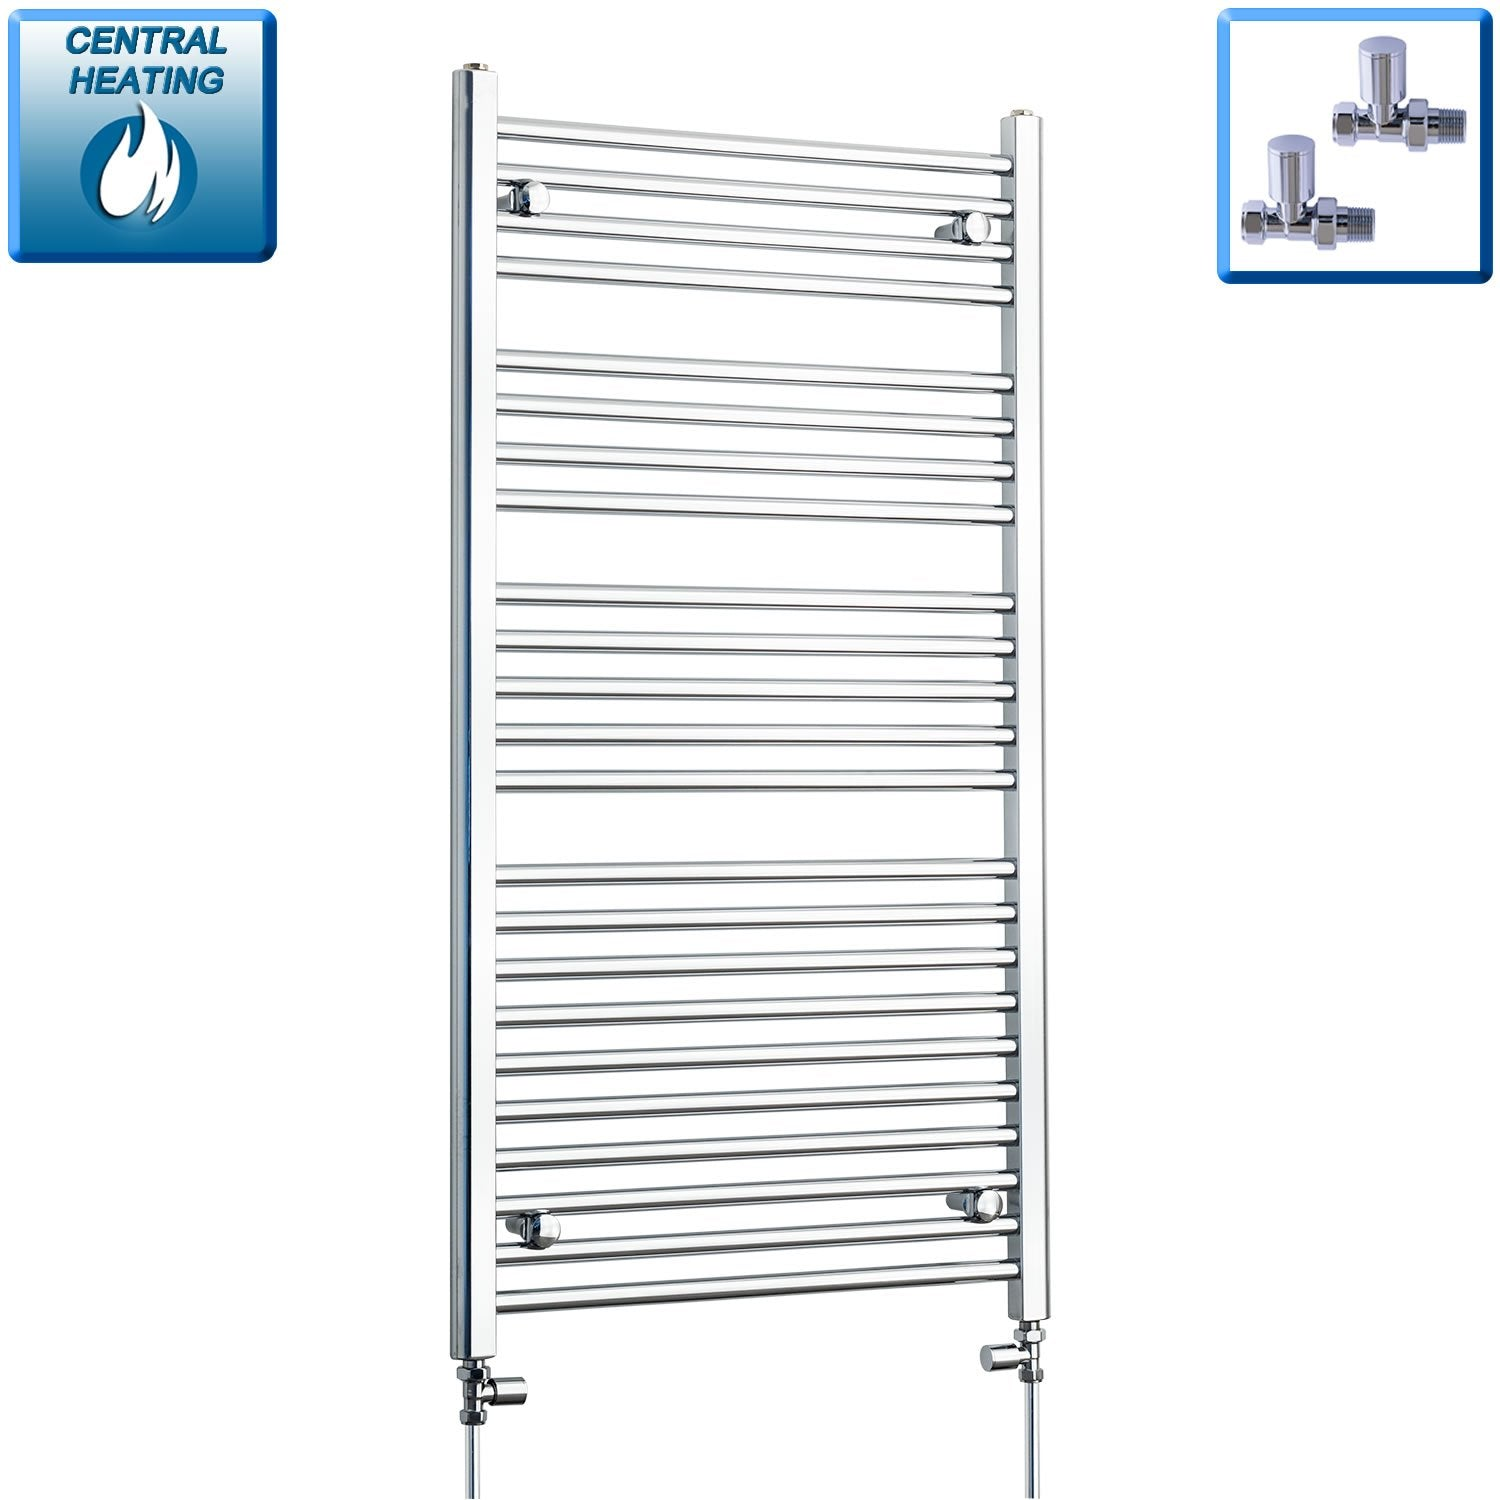 700mm Wide 1200mm High Curved Chrome Heated Towel Rail Radiator HTR,With Straight Valve